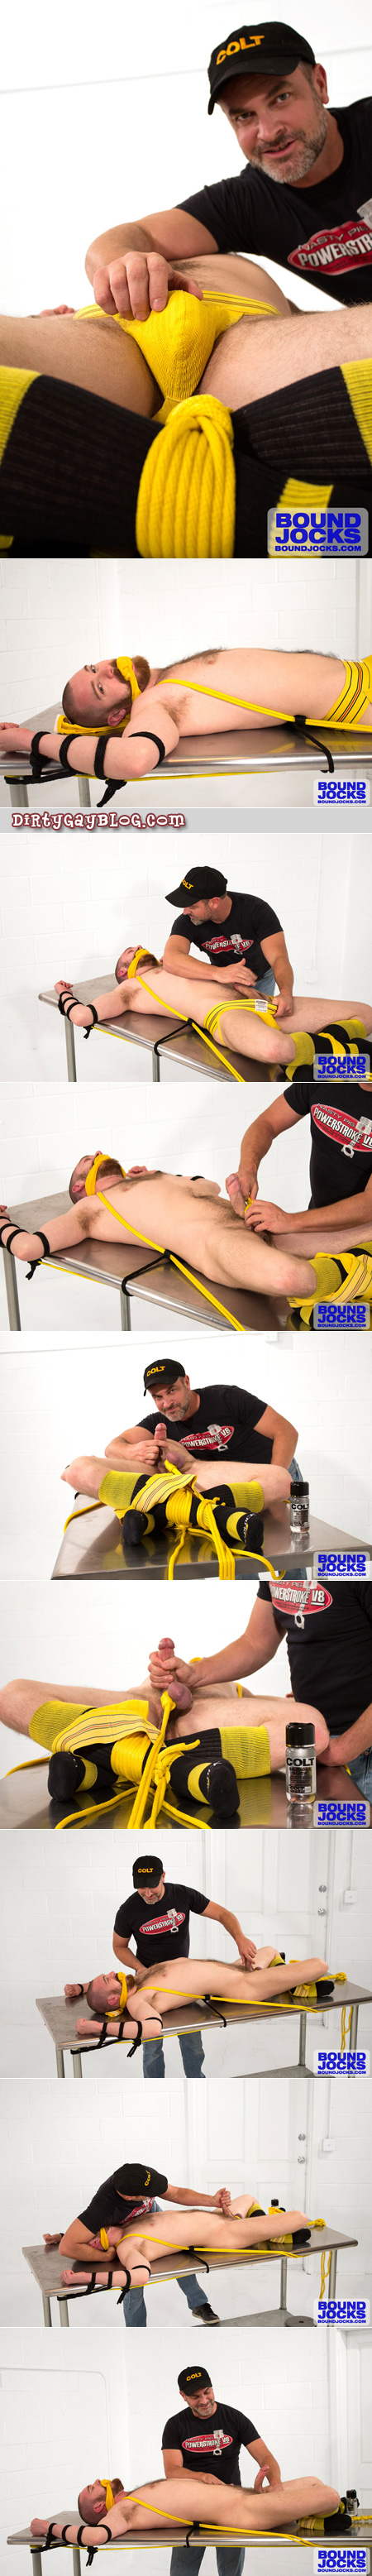 Silver Daddy edges his bear cub who's tied to a table in nothing but a yellow jockstrap and rugby socks.